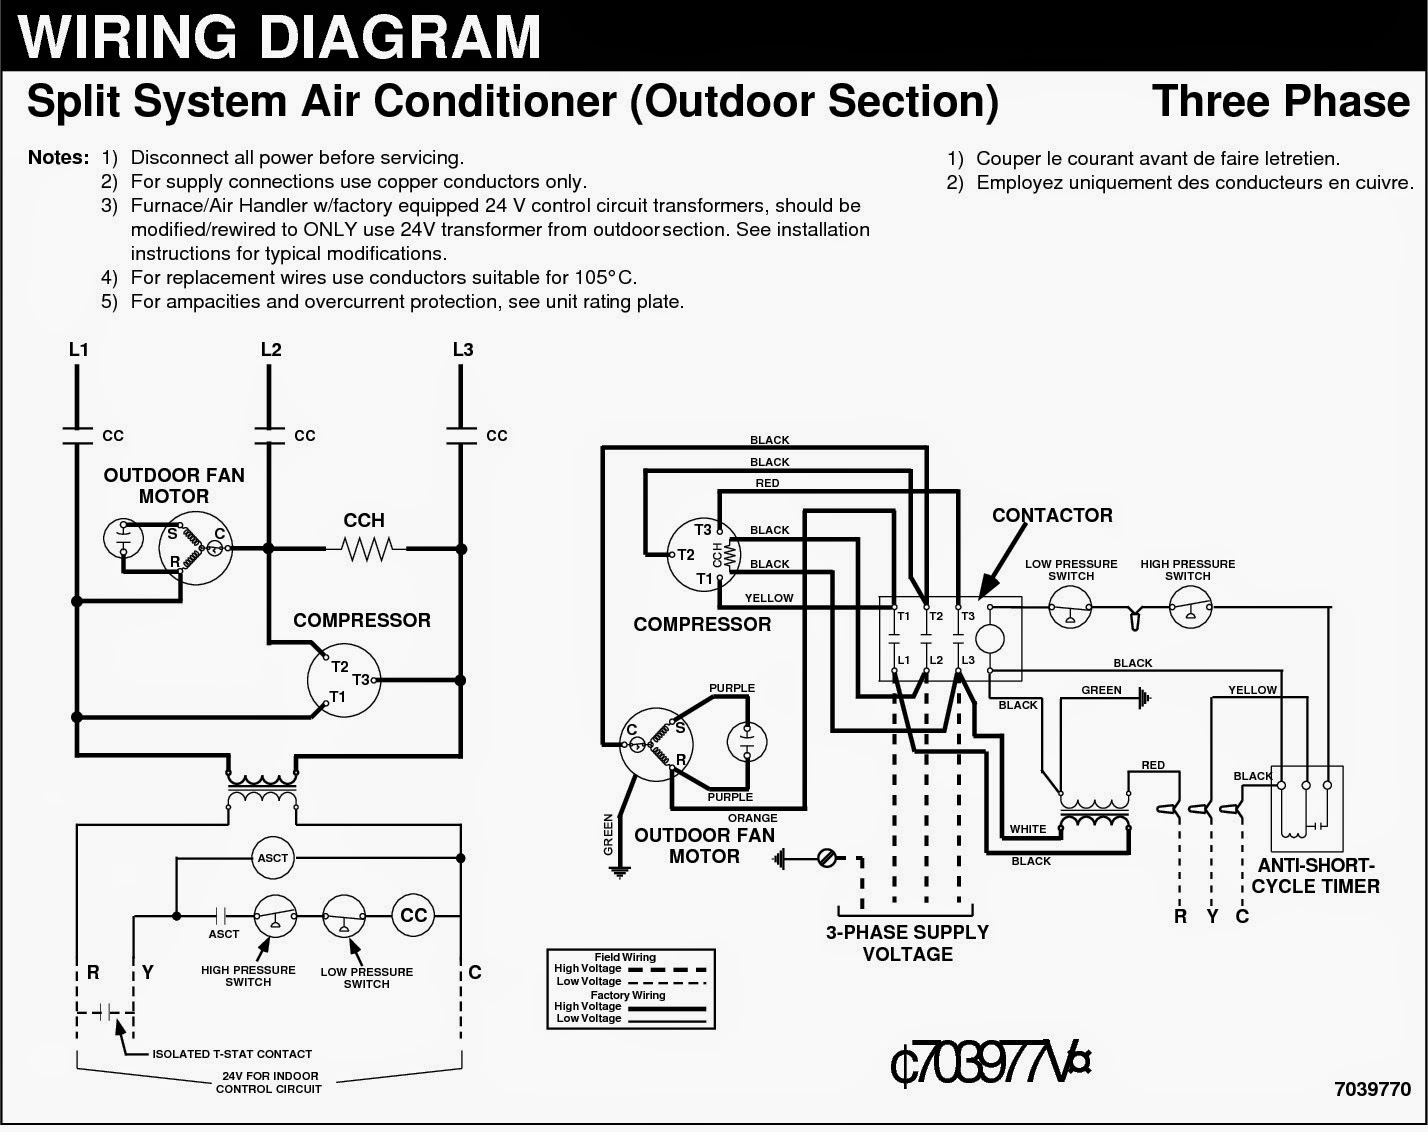 3+phase electrical wiring diagrams for air conditioning systems part two wiring diagram for ac compressor unit at pacquiaovsvargaslive.co